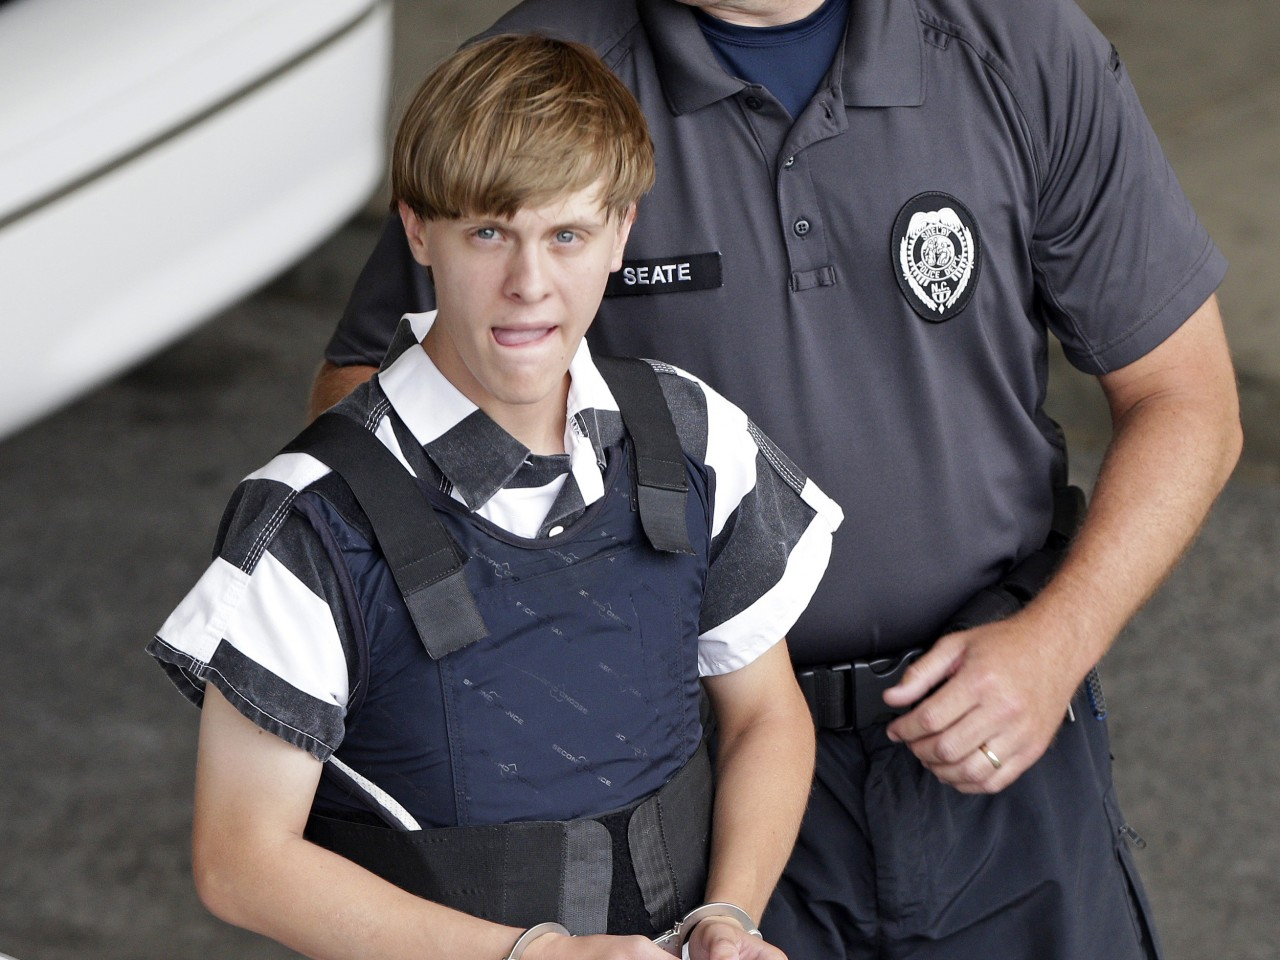 The racist disease we never discuss: Dylann Roof, over-policing and the real ...